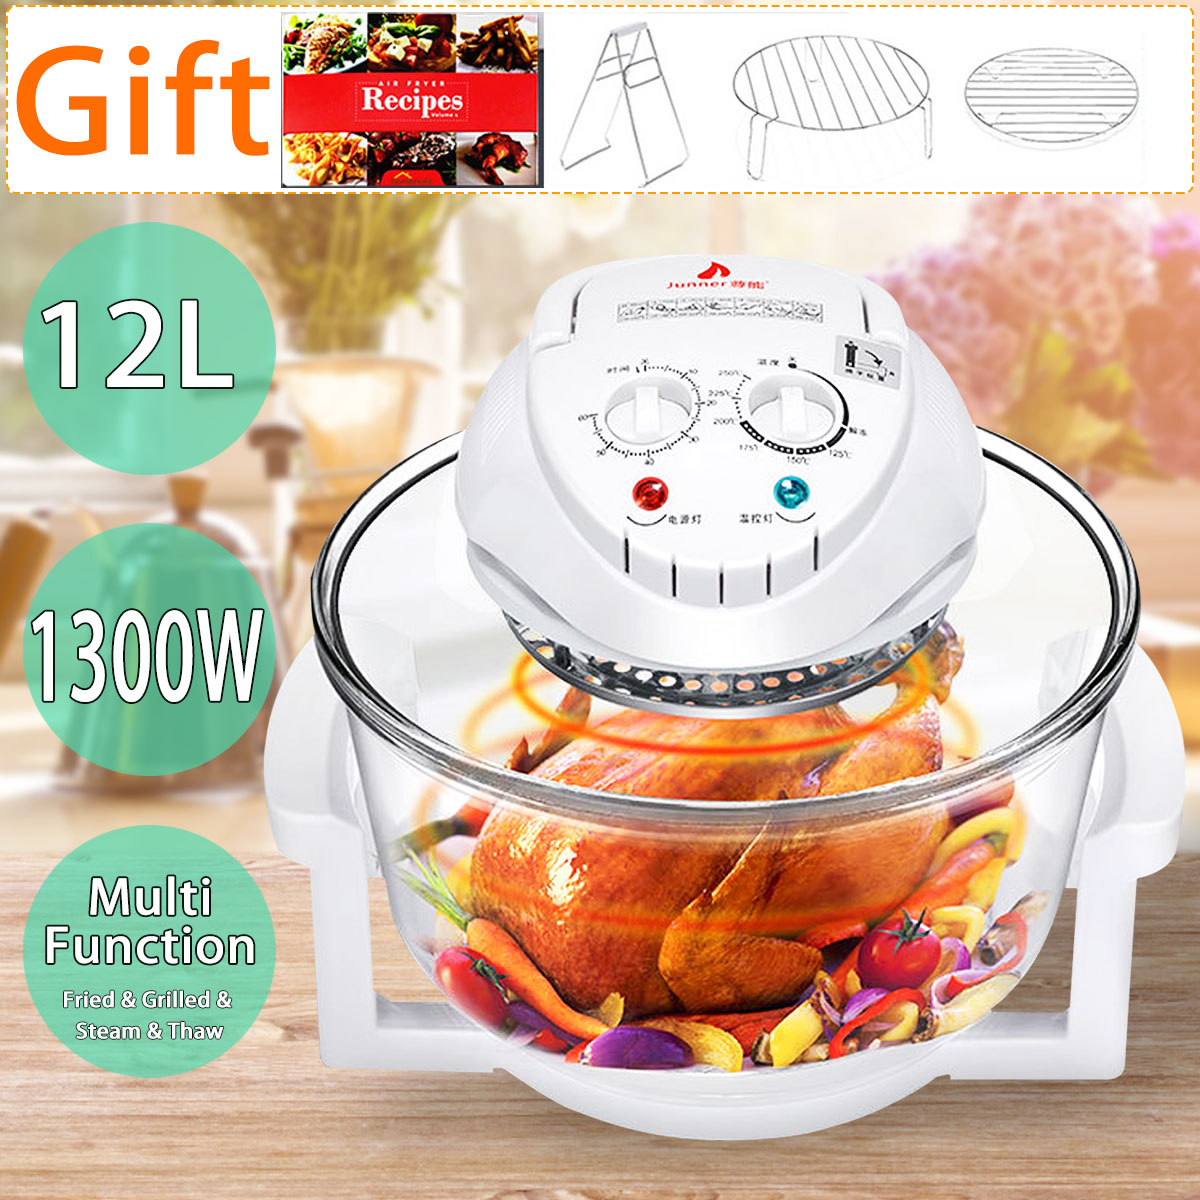 1300W 12L Multifunction Conventional Infrared Oven Roaster Air Fryer Turbo Electric Cooker BBQ Bake Cook With Recipe 110V-220V title=